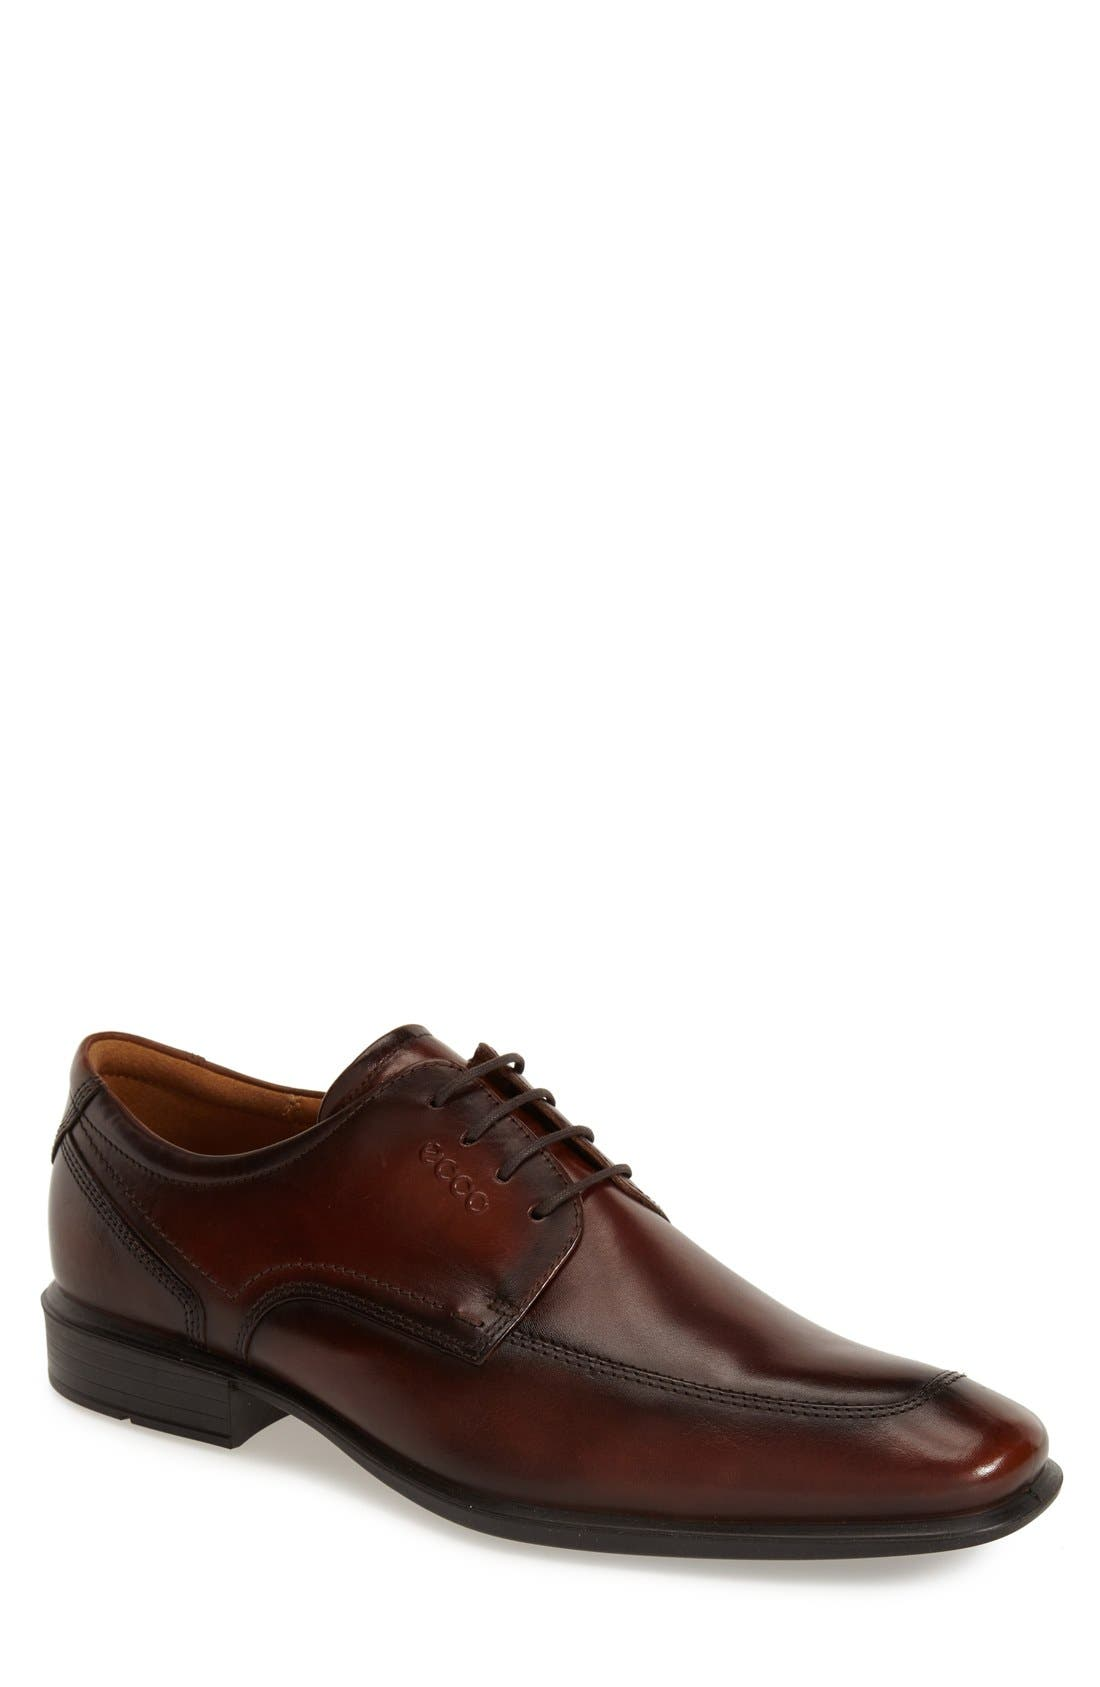 ECCO 'Cairo' Apron Toe Derby (Men)